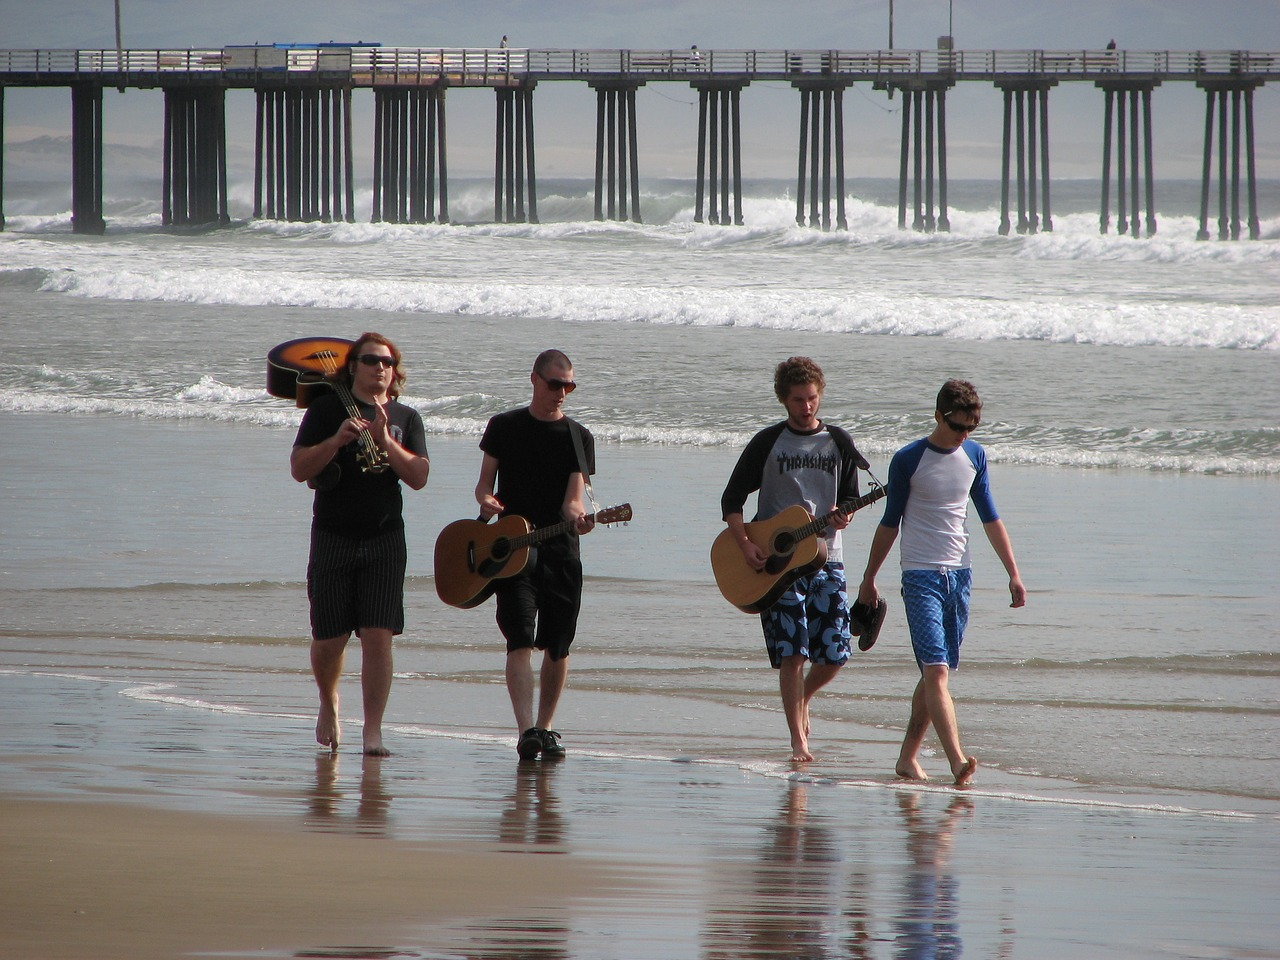 Lbi musical entertainment concerts and shows for summer 2017 for Lbi surf fishing report